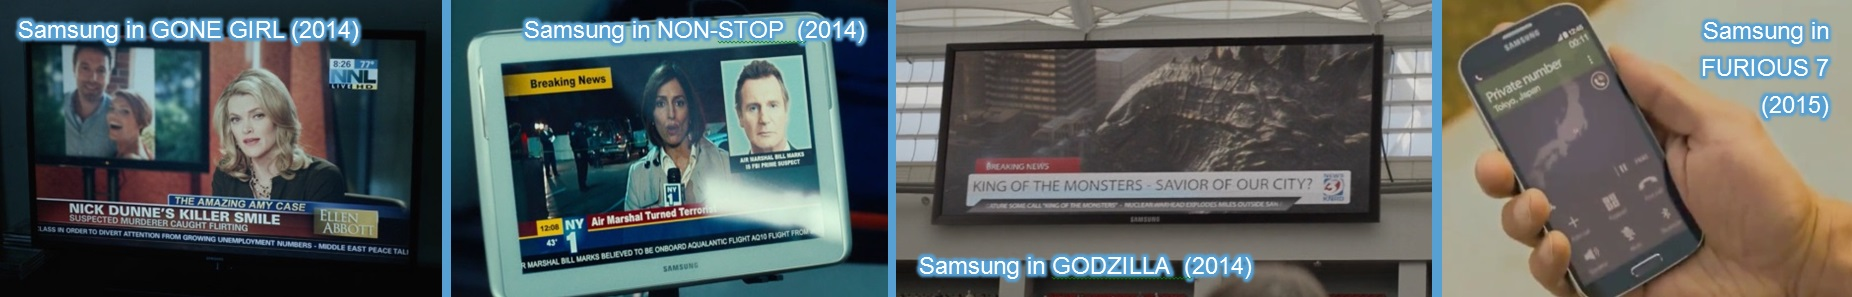 samsung in other movies